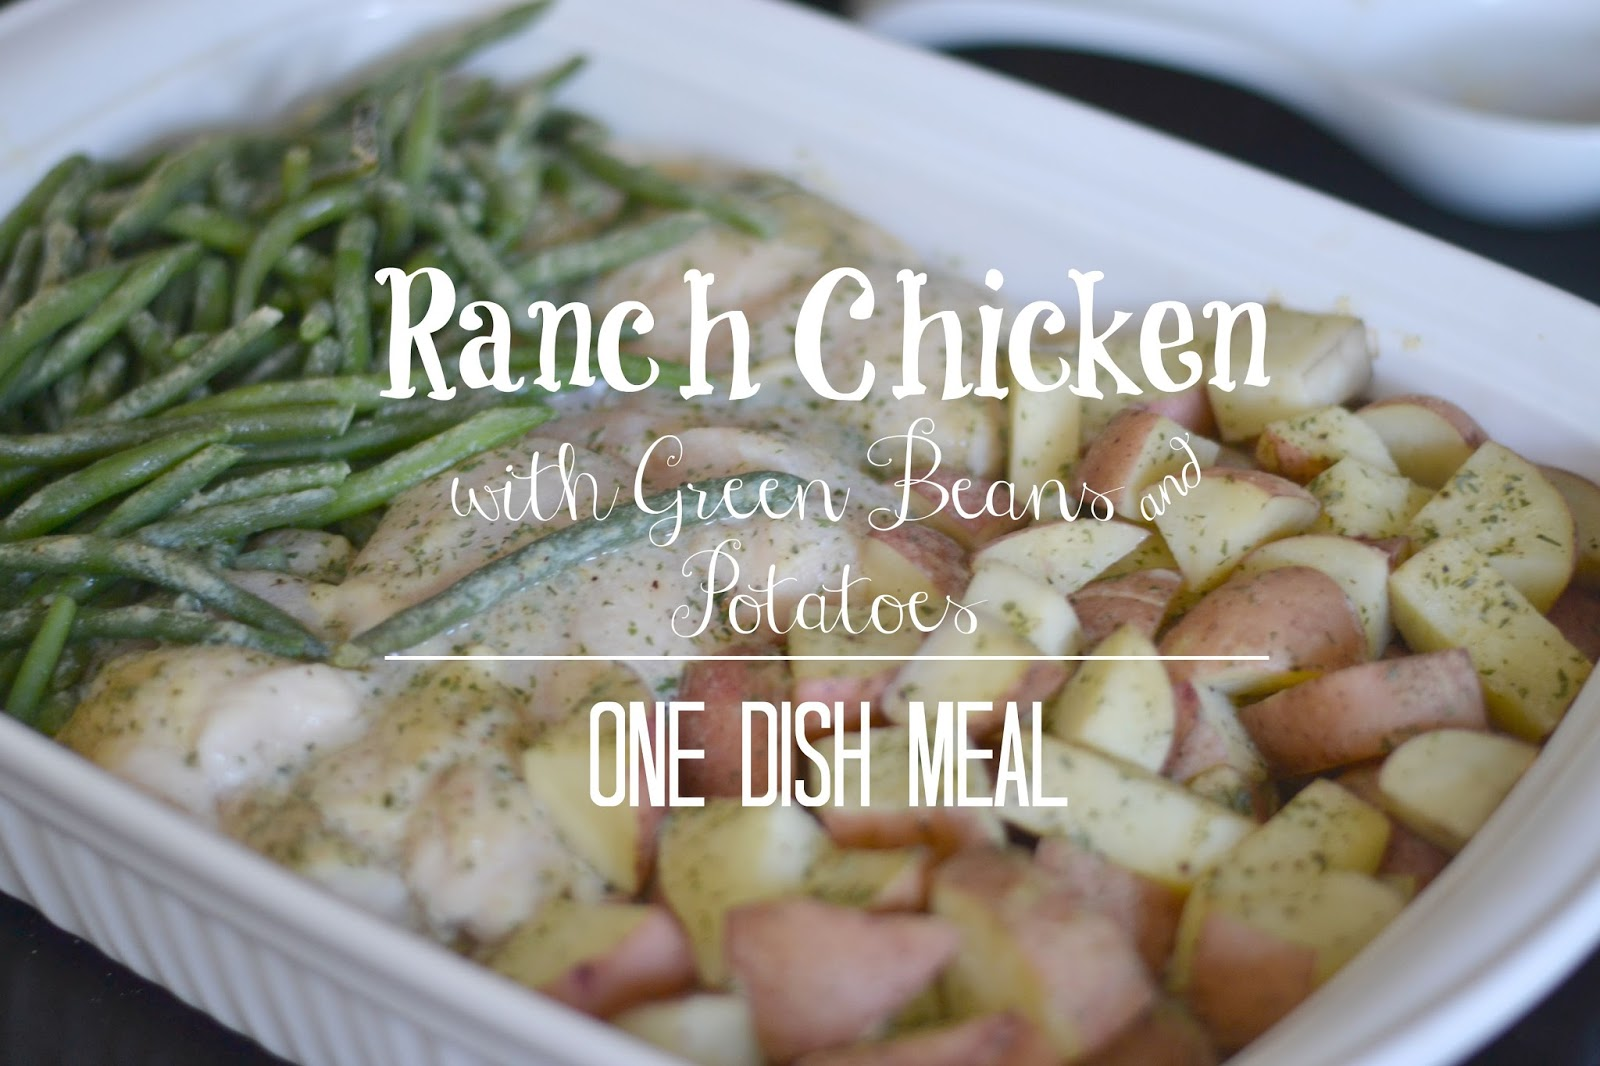 Ranch Chicken One Dish Meal Recipe